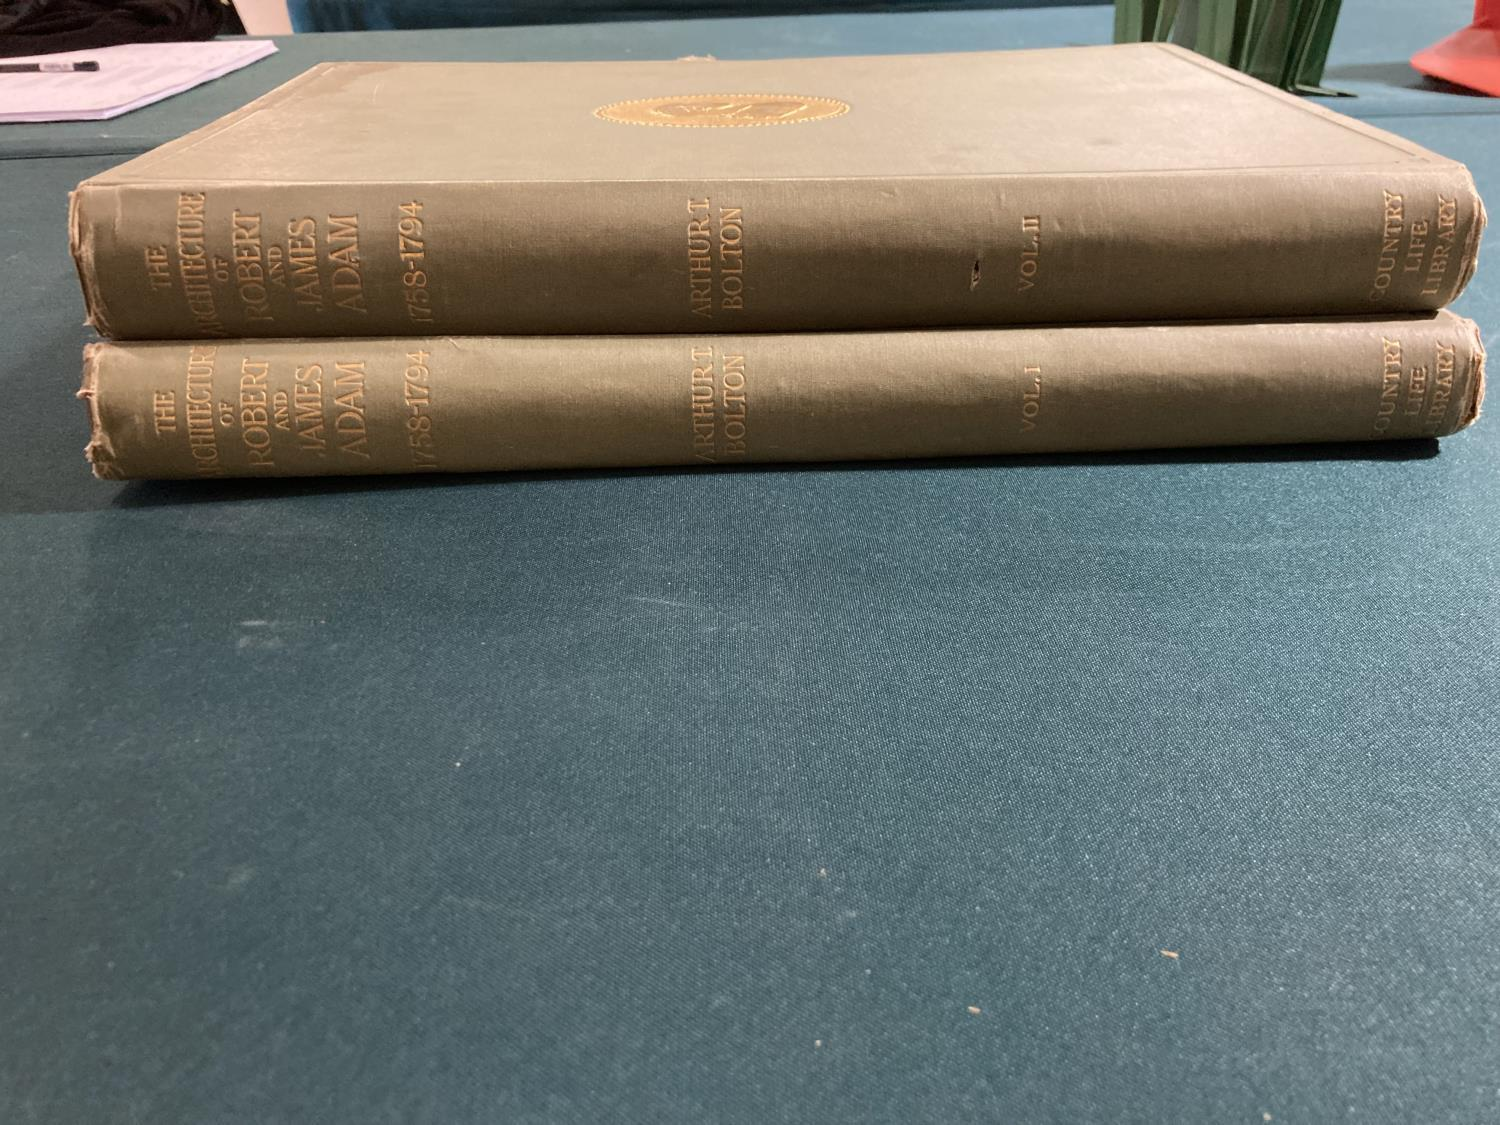 Bolton, Arthur T. The Architecture of Robert and James Adam, 2 volumes, first edition, plates, - Image 2 of 22